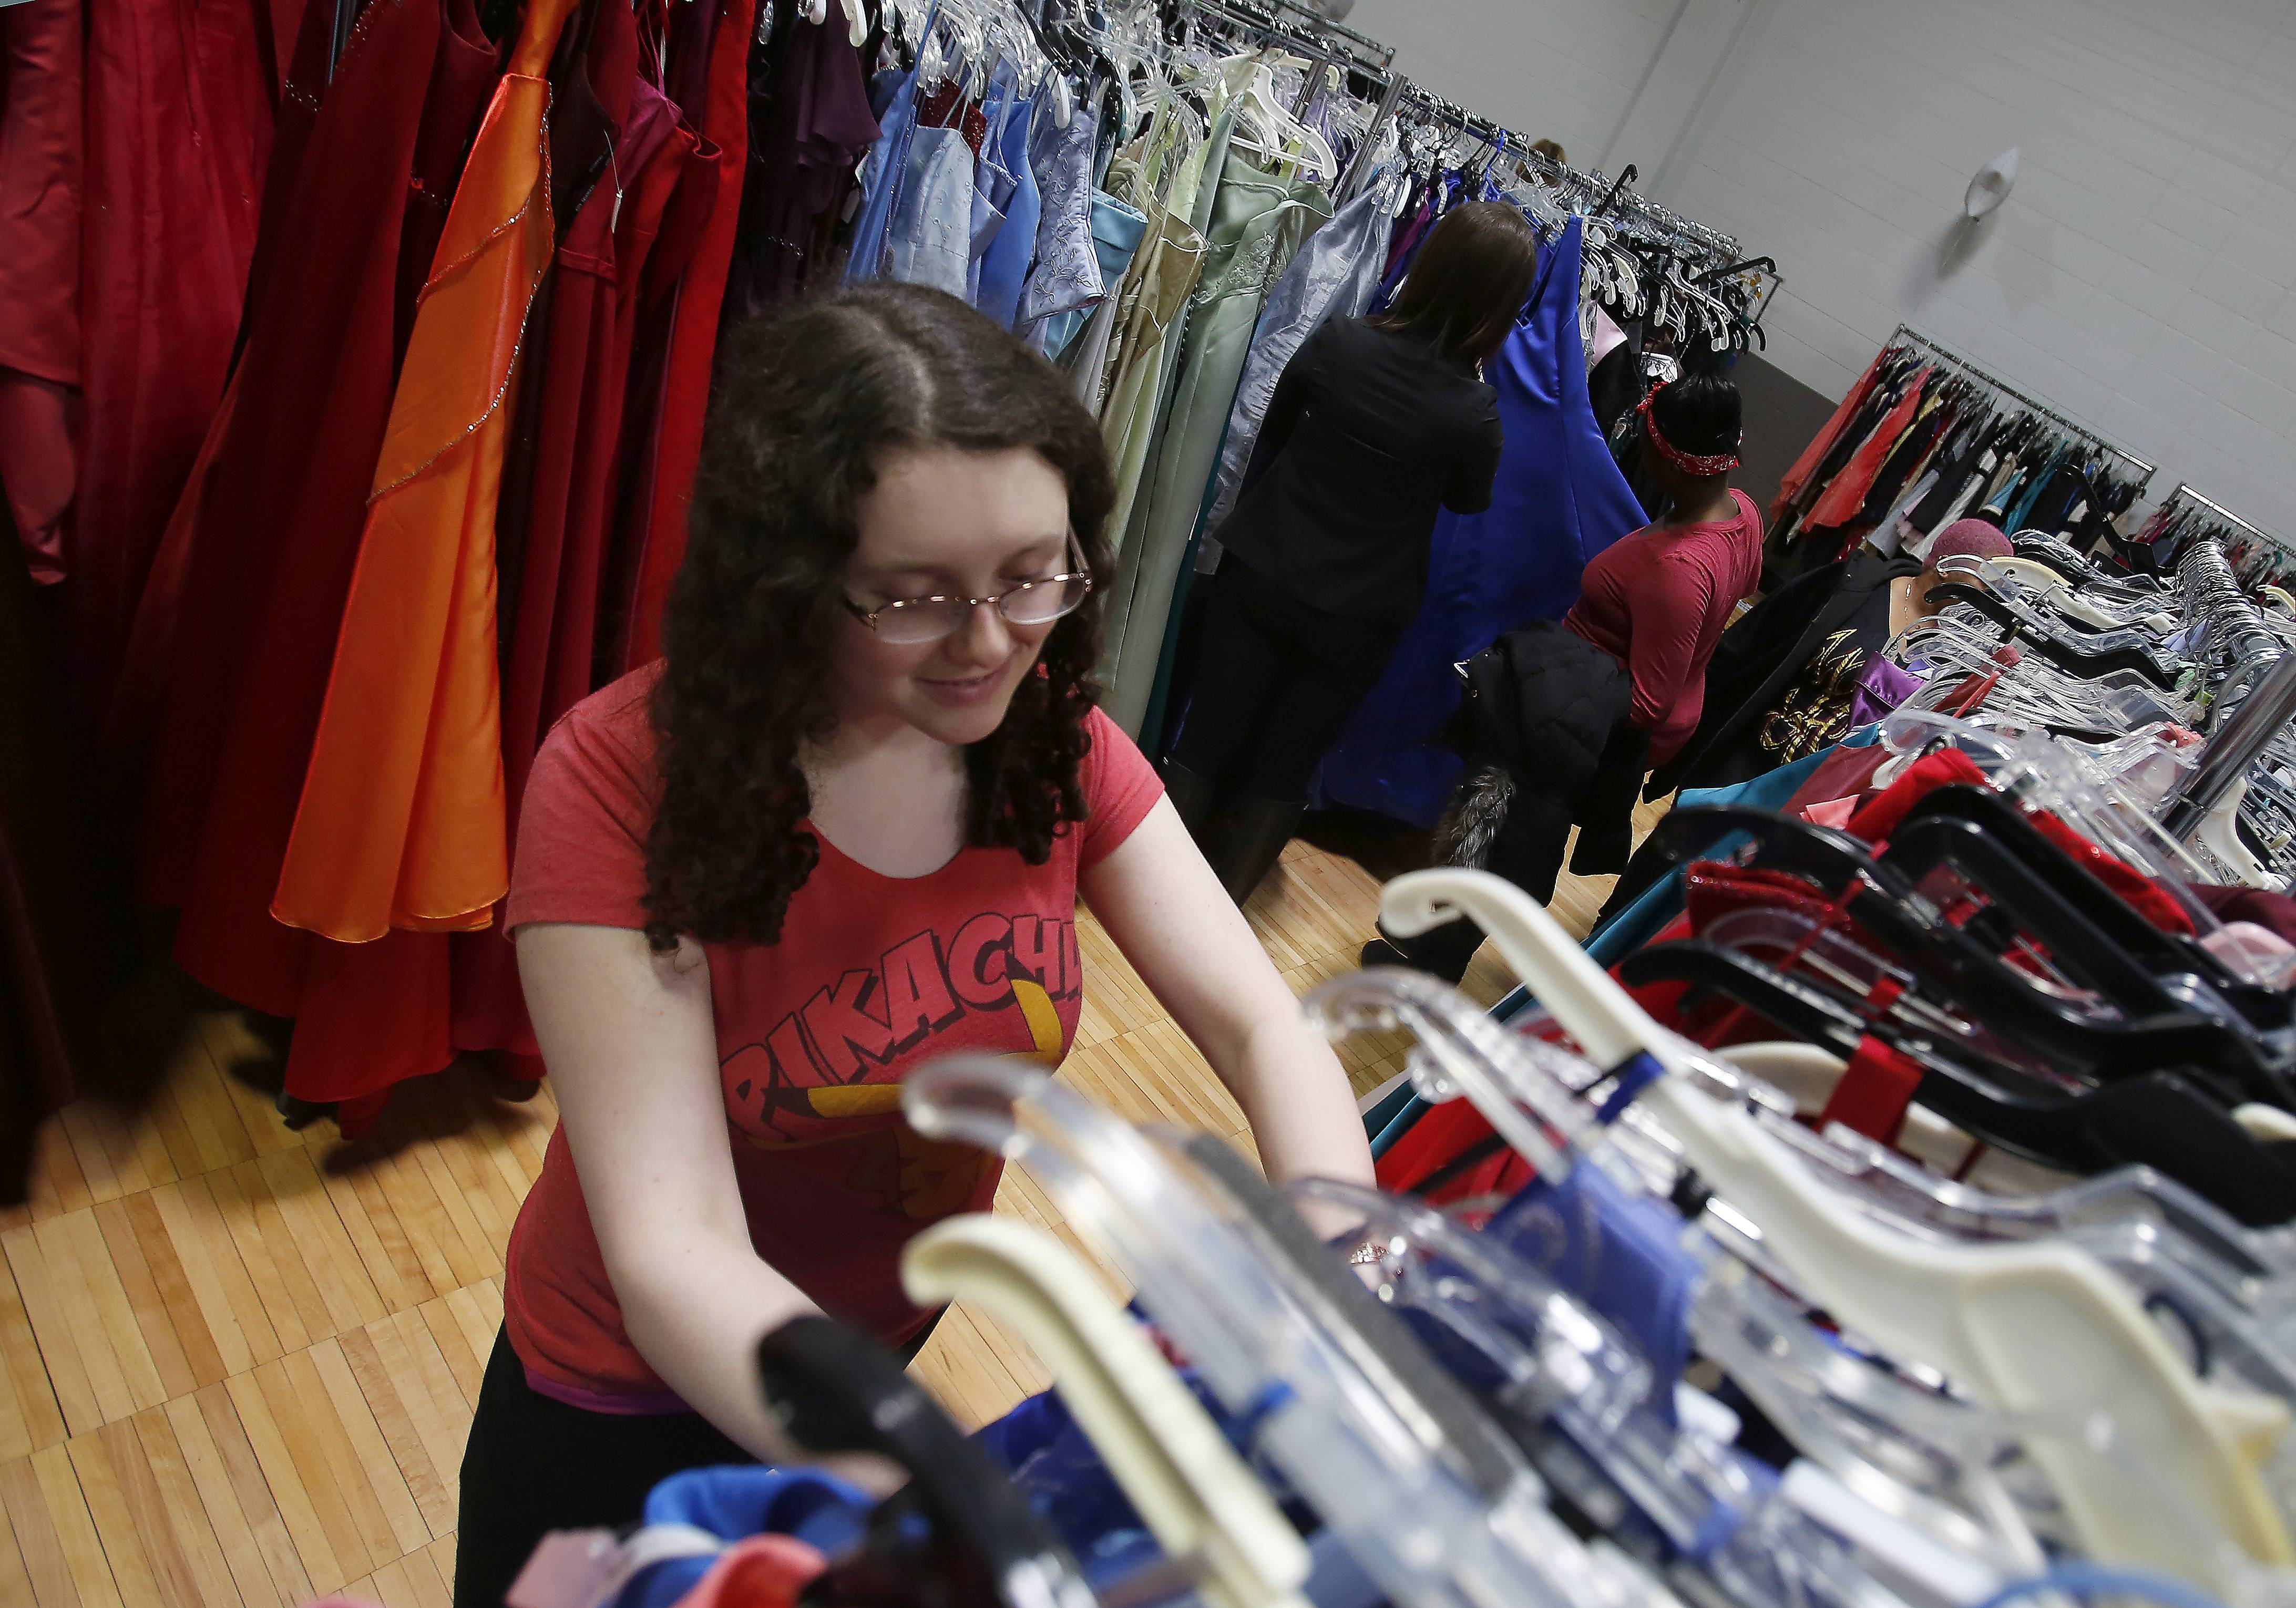 Katherine Winston, 16, of Naperville looks over some of the dresses during the annual Cinderella's Closet event Saturday the YWCA in Elgin.